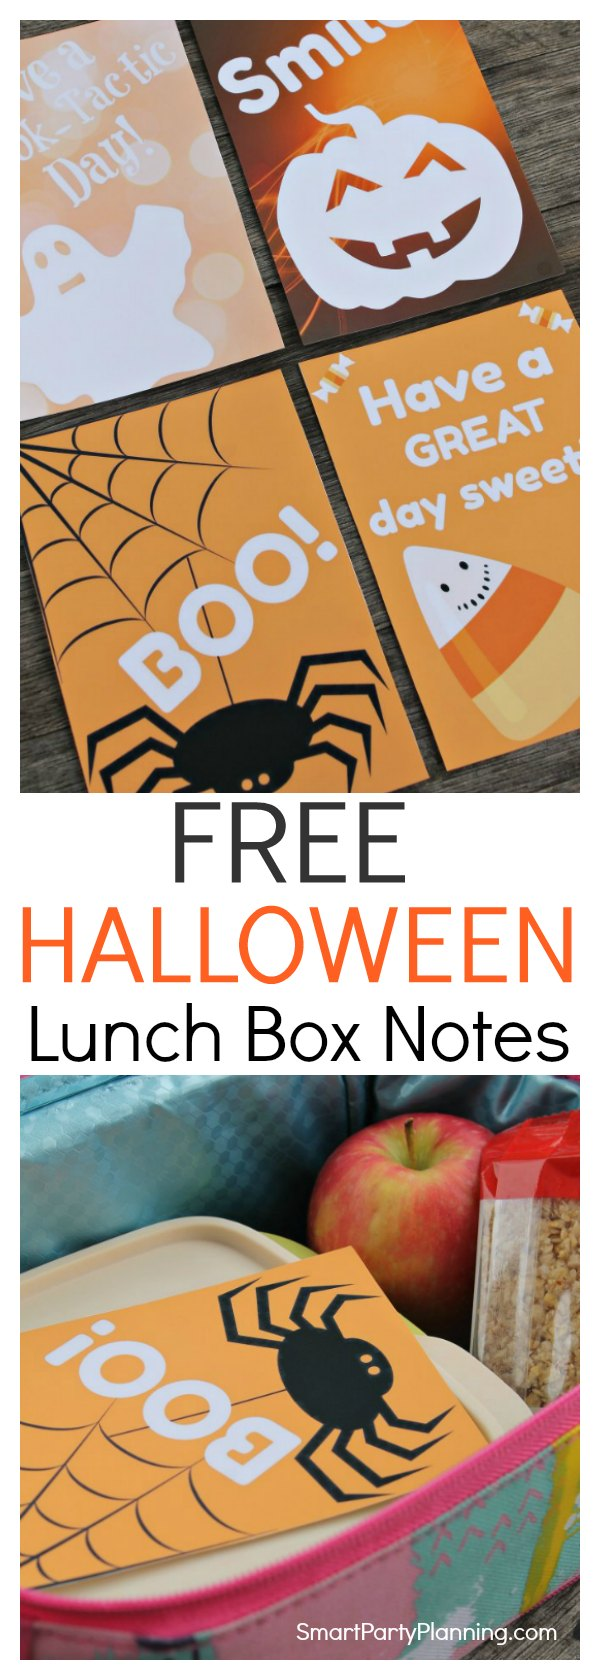 Print off some fun Halloween lunch box notes for the kids today.  They are the easiest way to surprise your little one, and they will definitely put a smile on their face.  Easy to download, then simply print, cut and have some spooky Halloween fun.